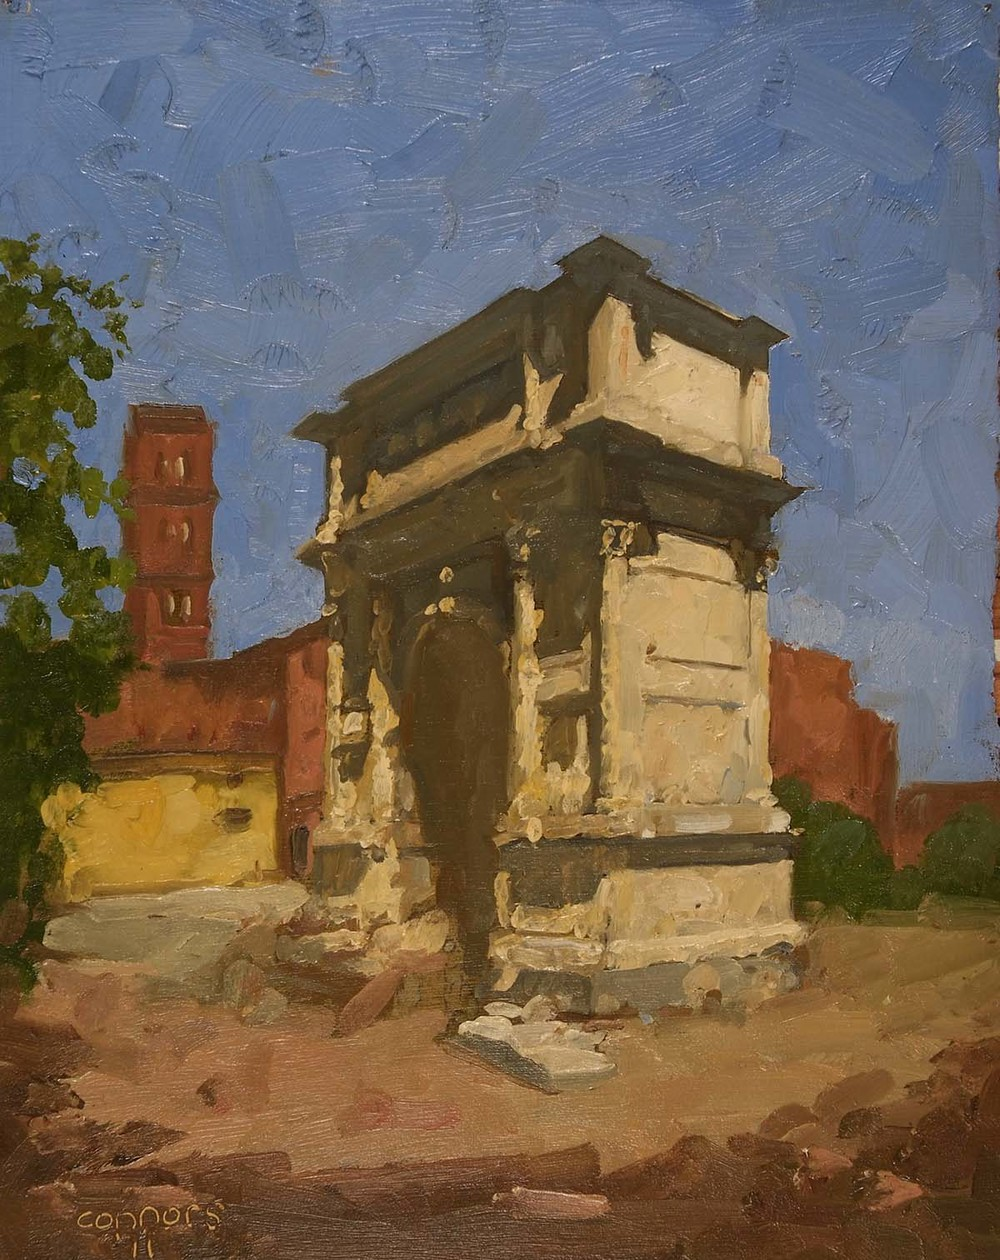 The Arch of Titus, 12 x 9.5 inches, oil on prepared paper